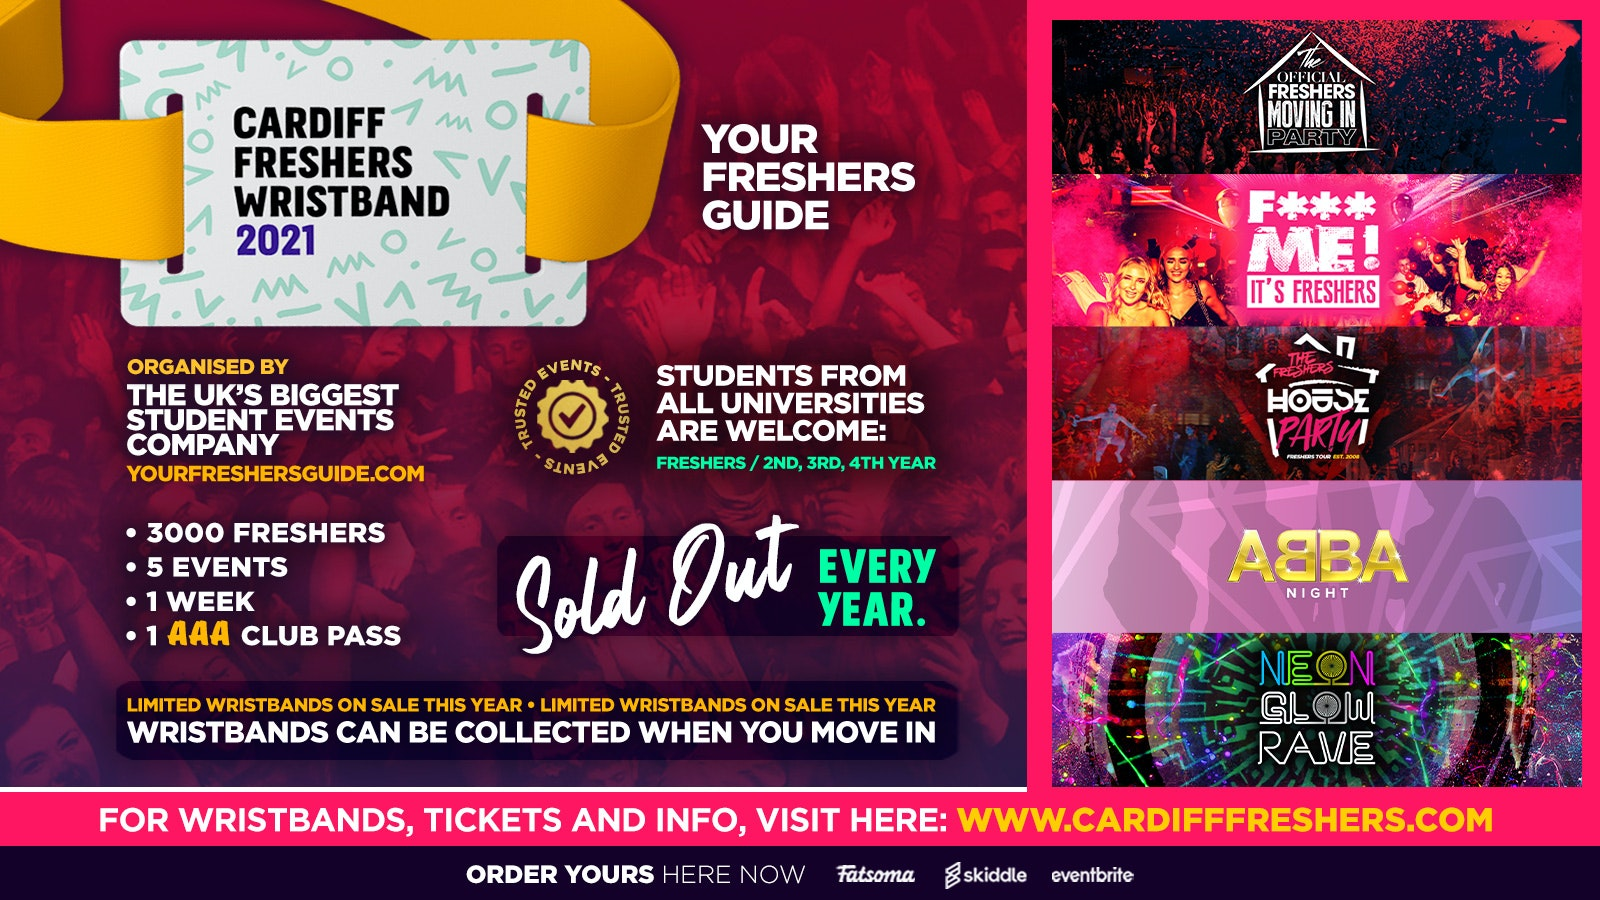 Cardiff Freshers Wristband 2021 – The Official Freshers Pass | Includes the biggest events in Cardiff